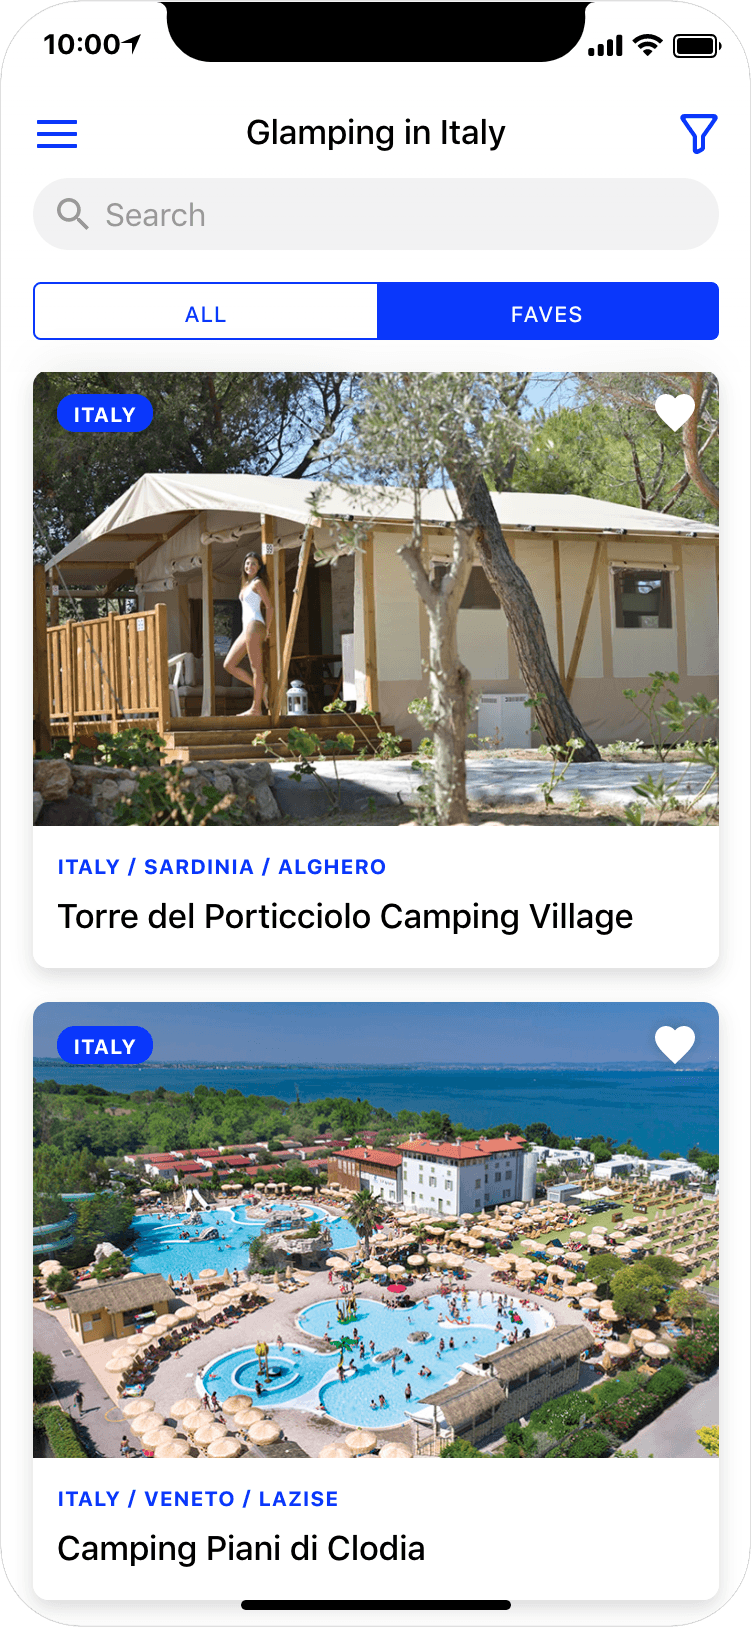 Glamping in Italy - search results page, app screenshot